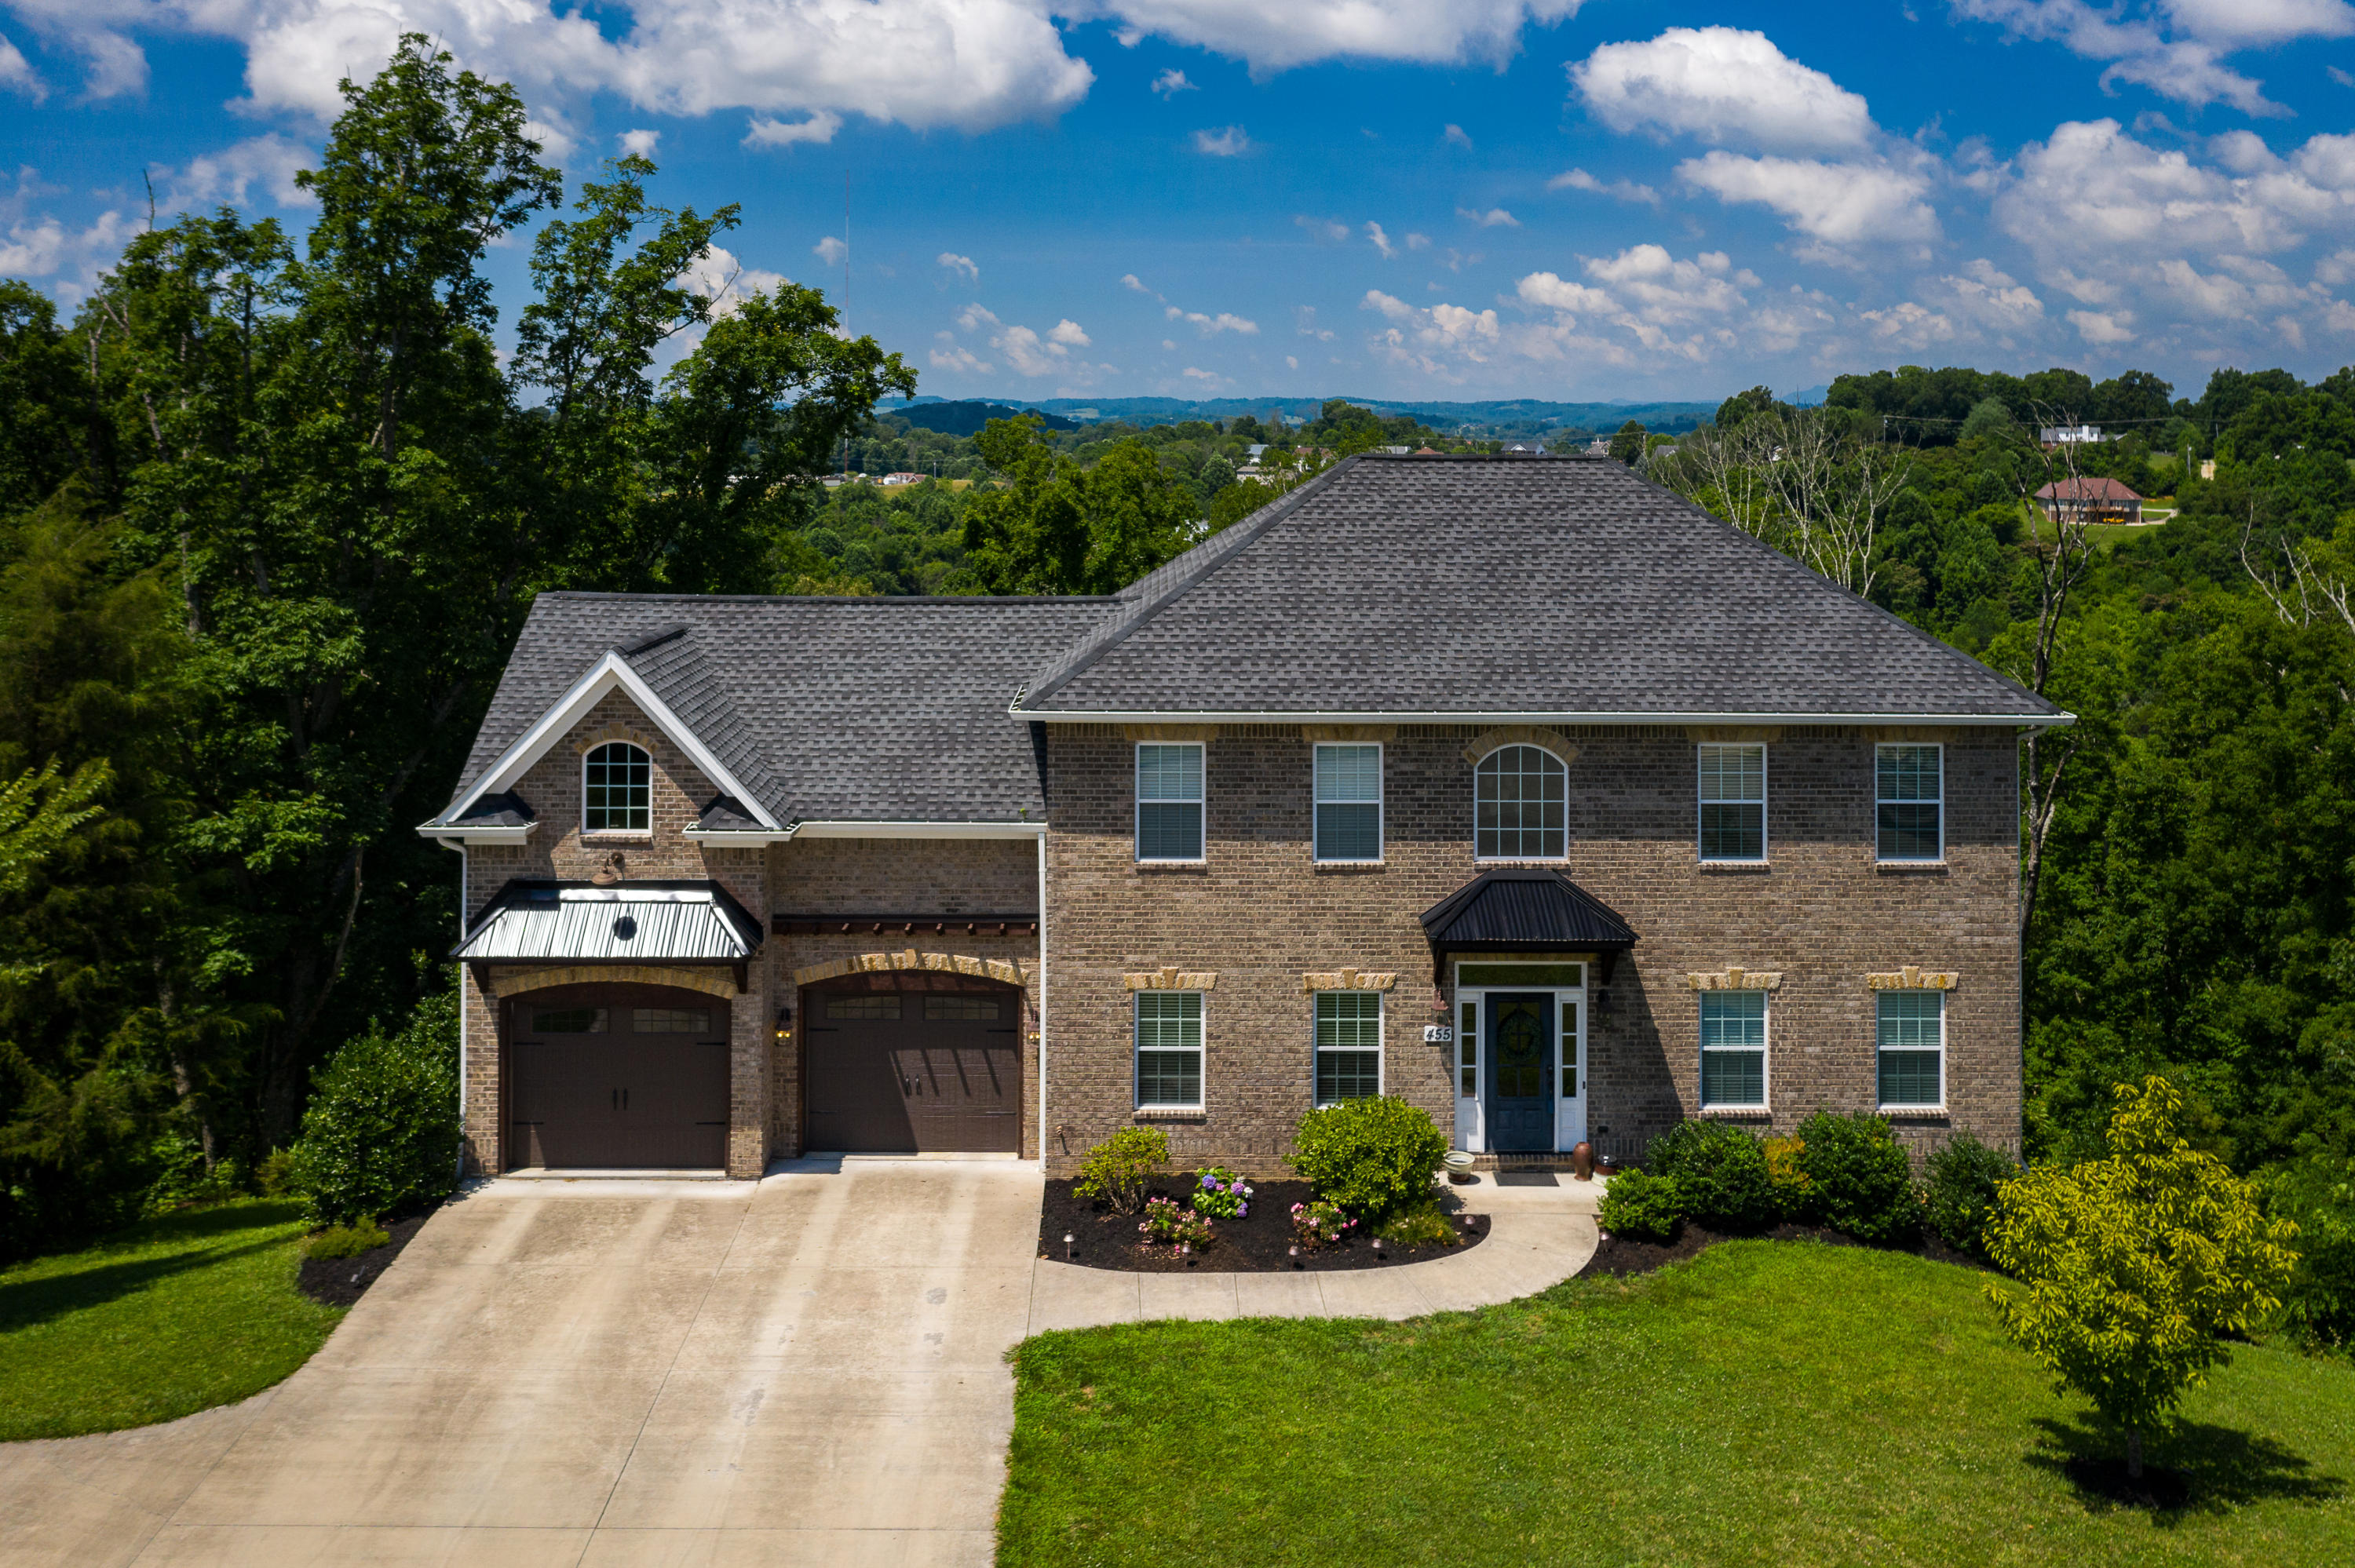 455 Ridgeview Meadows Drive, Gray, Tennessee 37615, 4 Bedrooms Bedrooms, ,4 BathroomsBathrooms,Single Family,For Sale,455 Ridgeview Meadows Drive,9909761